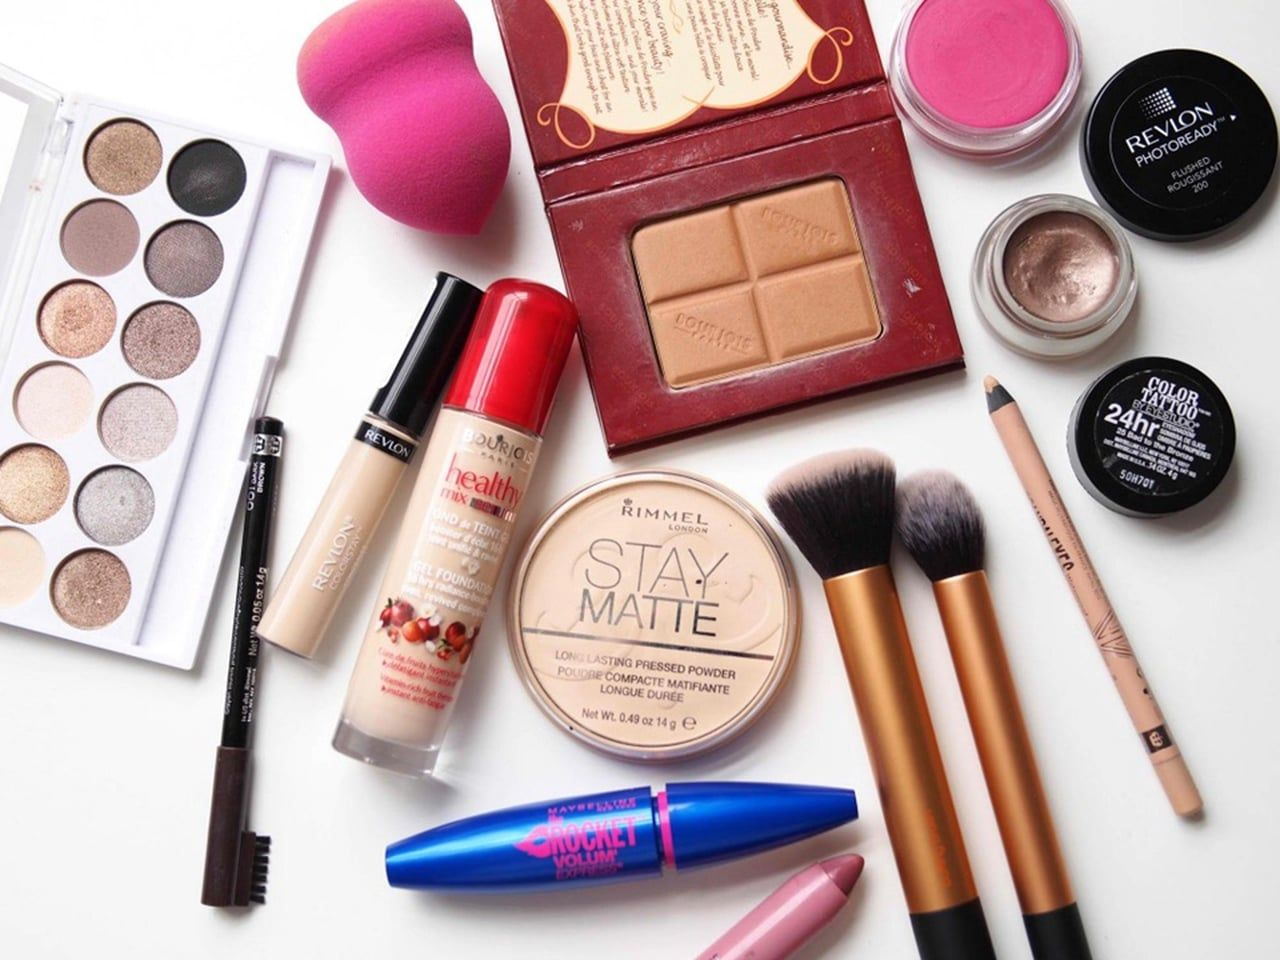 Priya Beauty Parlour Express Yourself Beauty products